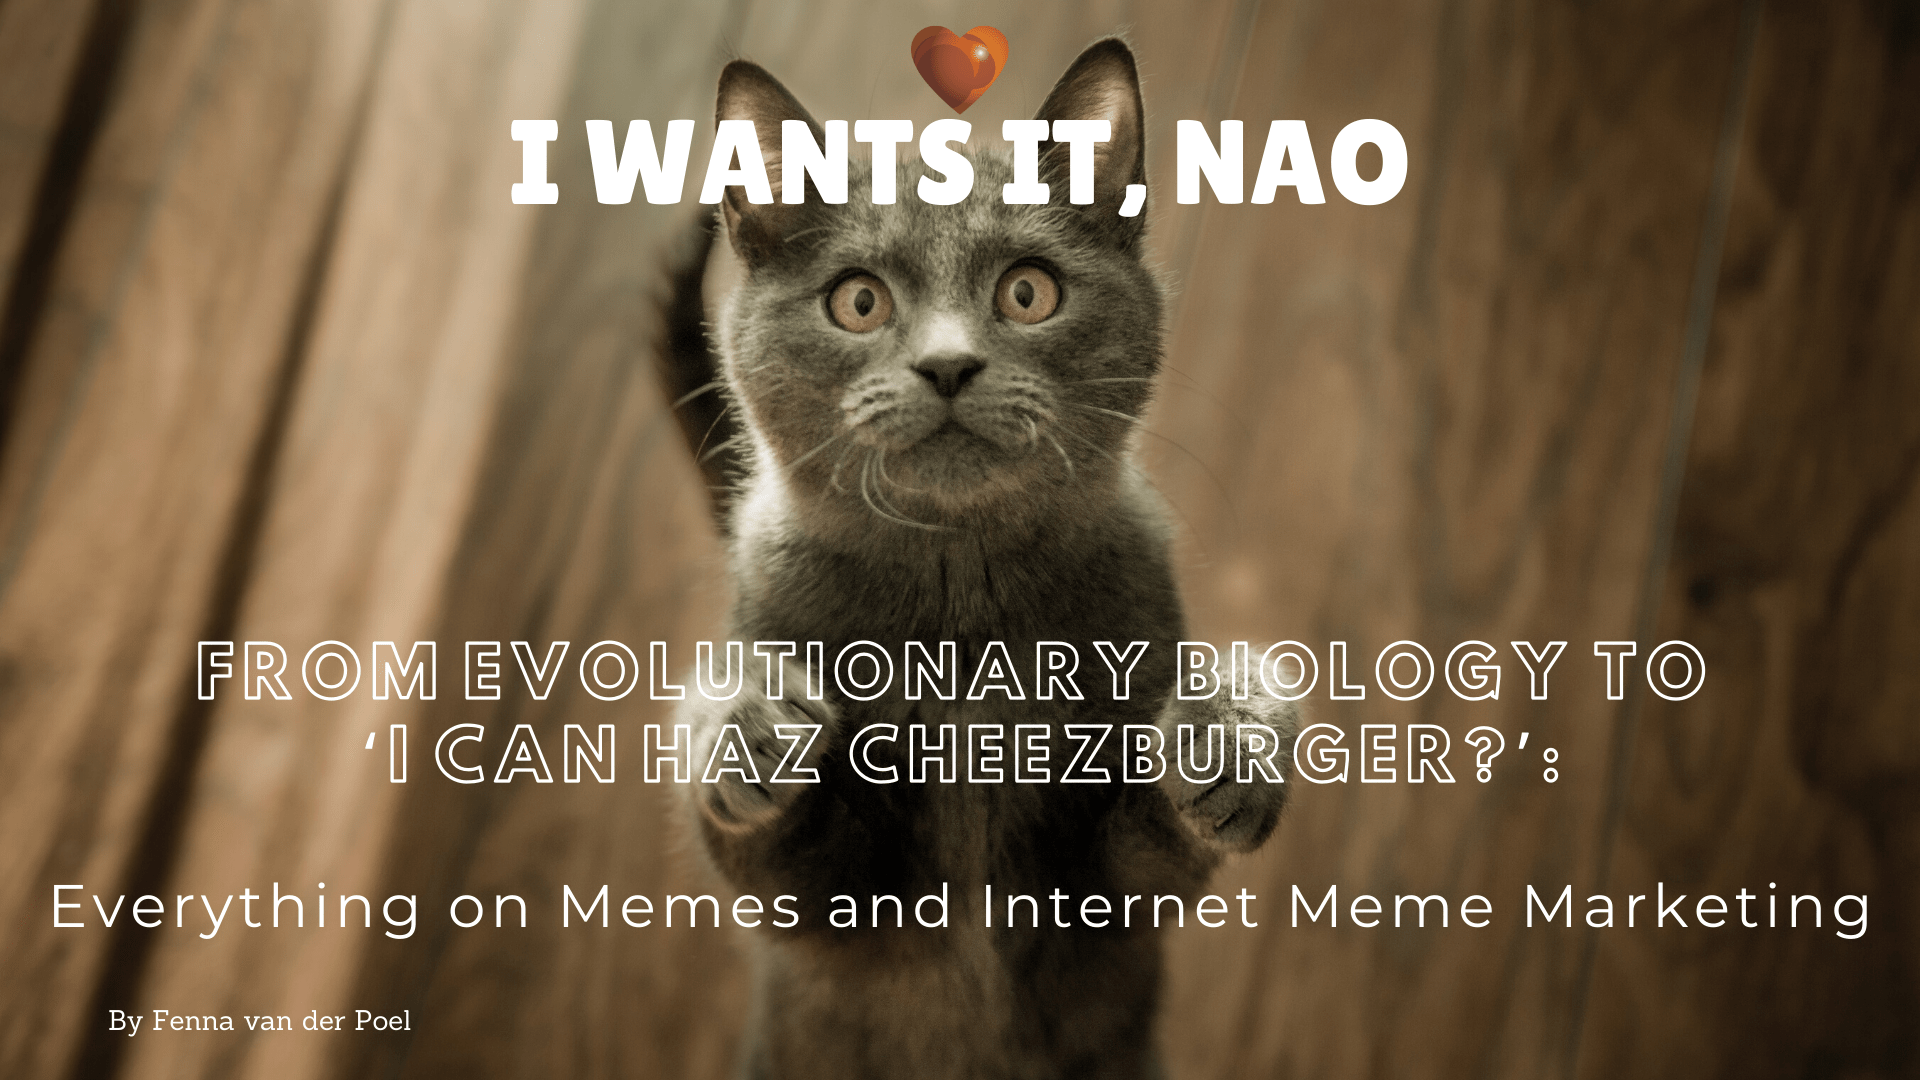 From Evolutionary Biology to 'Can I Haz Cheezburger_'_ Everything on Memes and Internet Meme Marketing